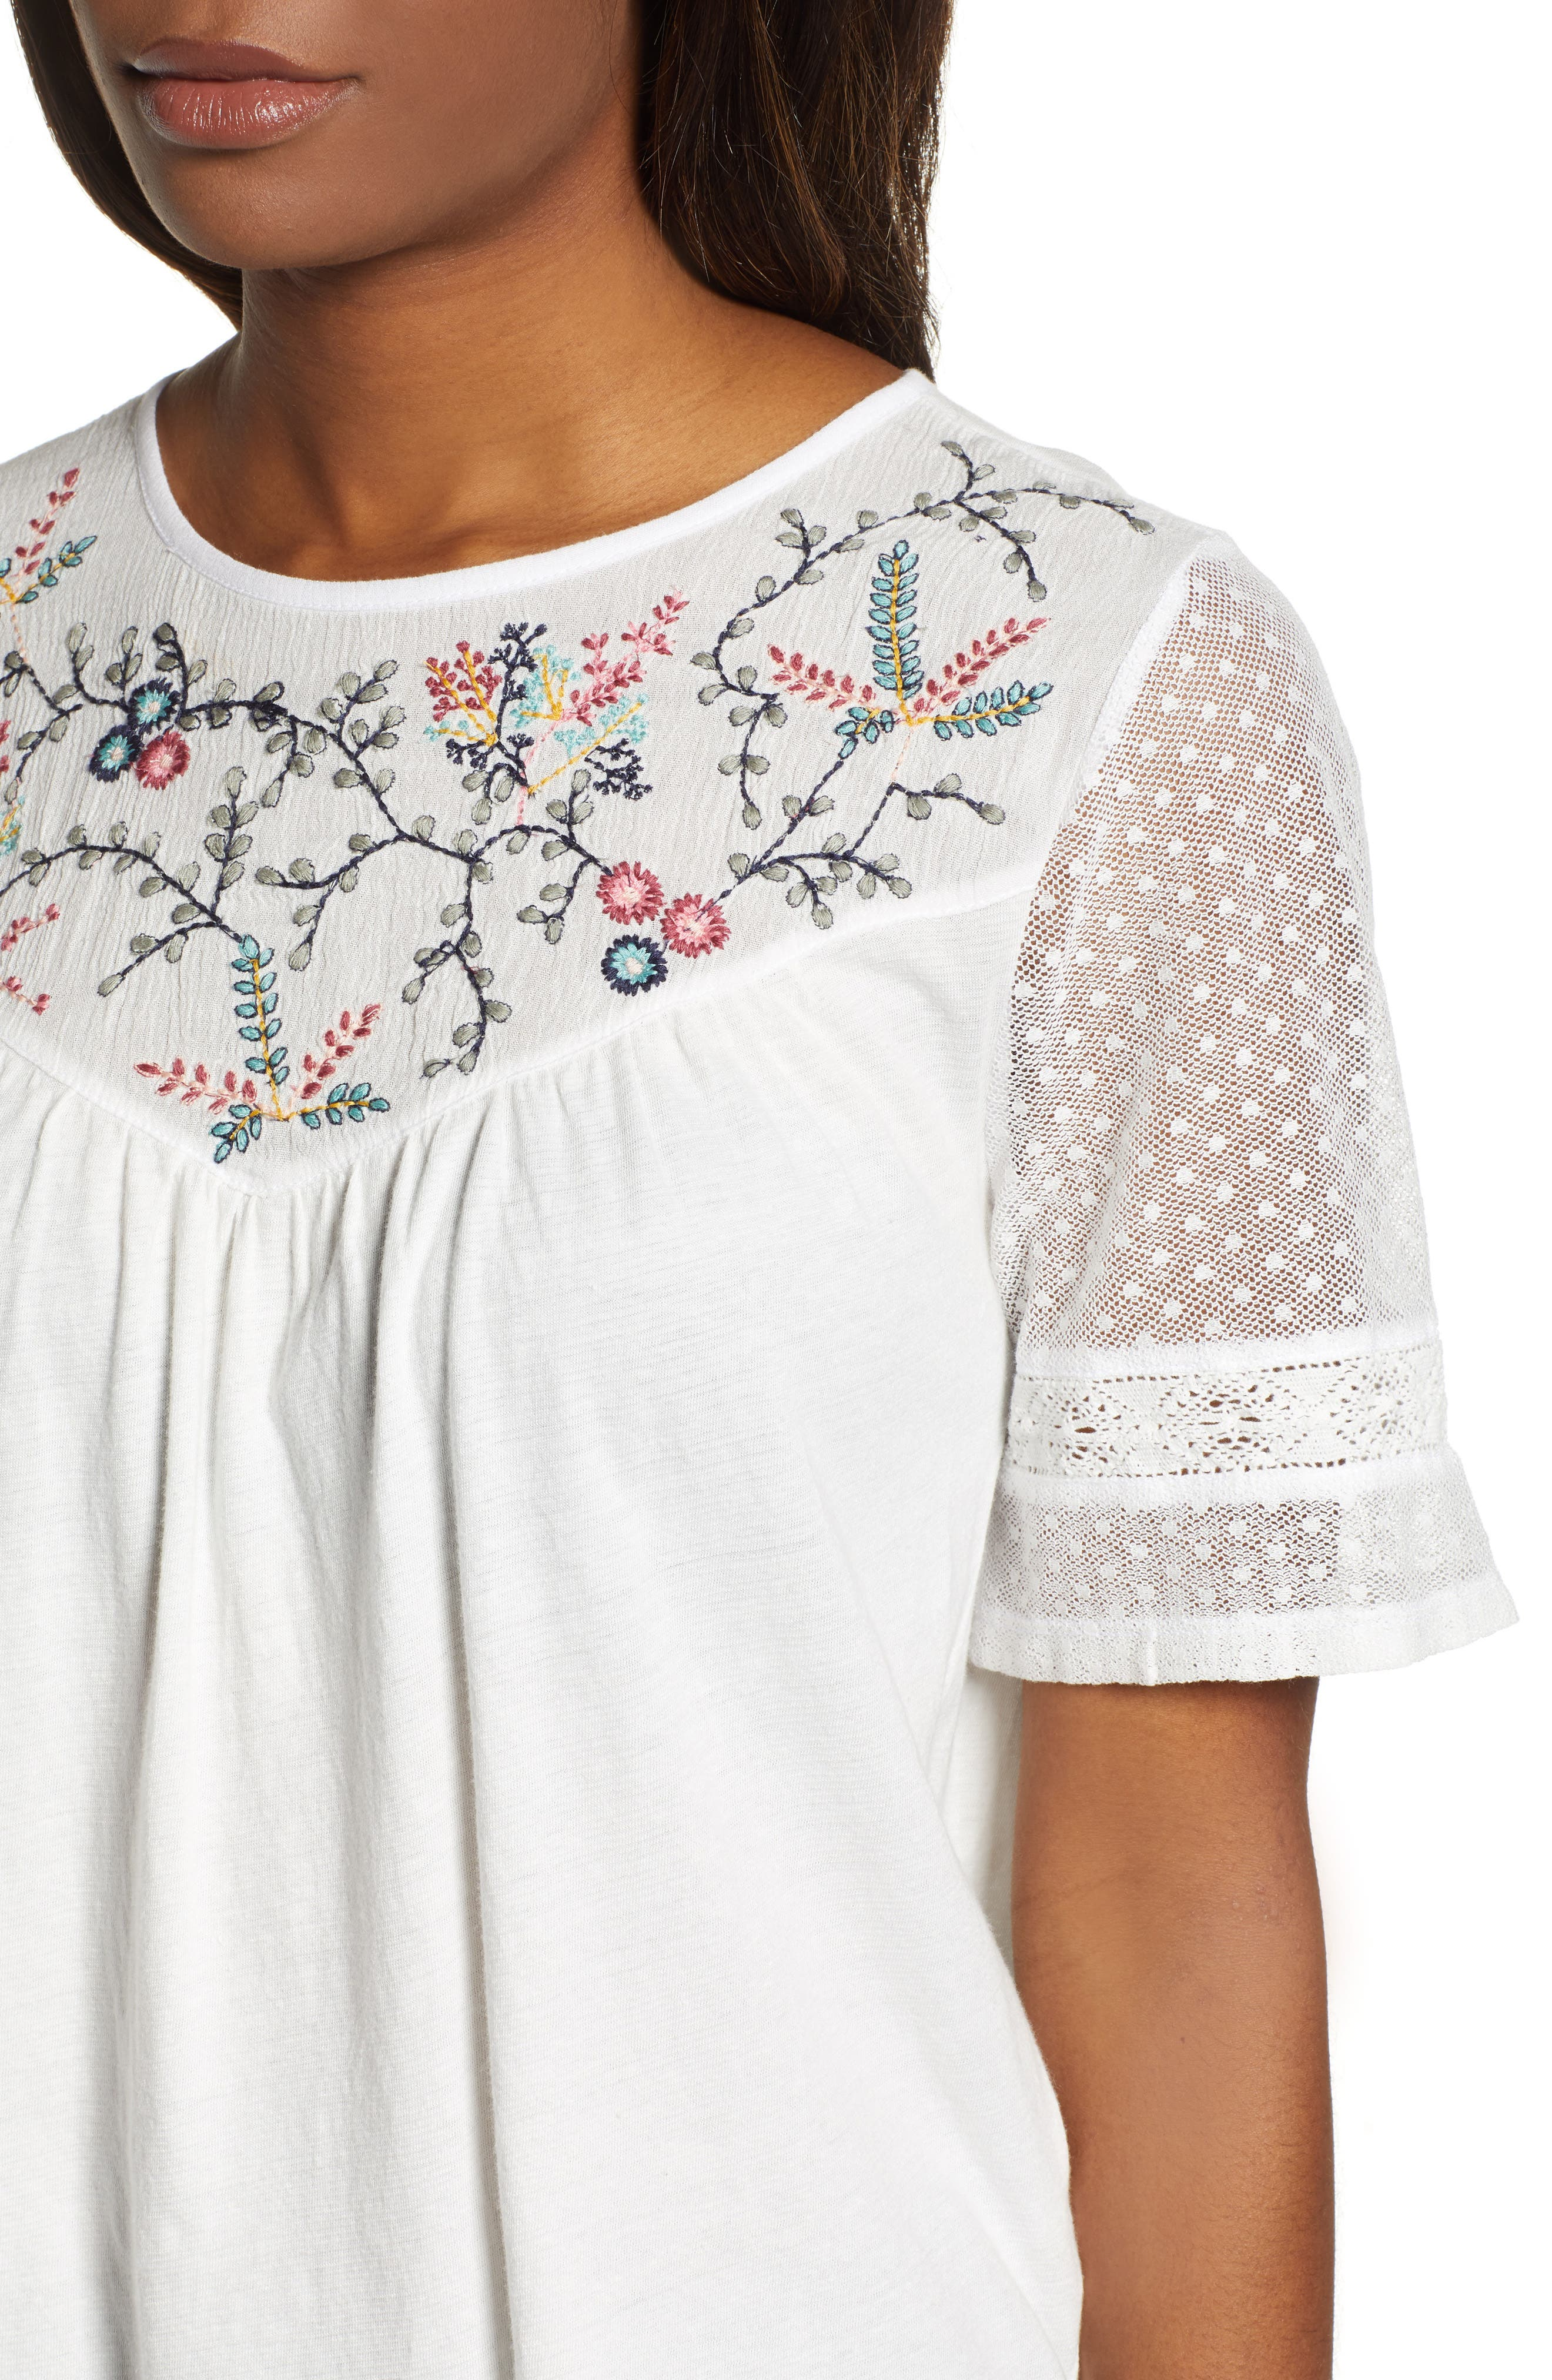 LUCKY BRAND,                             Embroidered Yoke Peasant Top,                             Alternate thumbnail 4, color,                             LUCKY WHITE